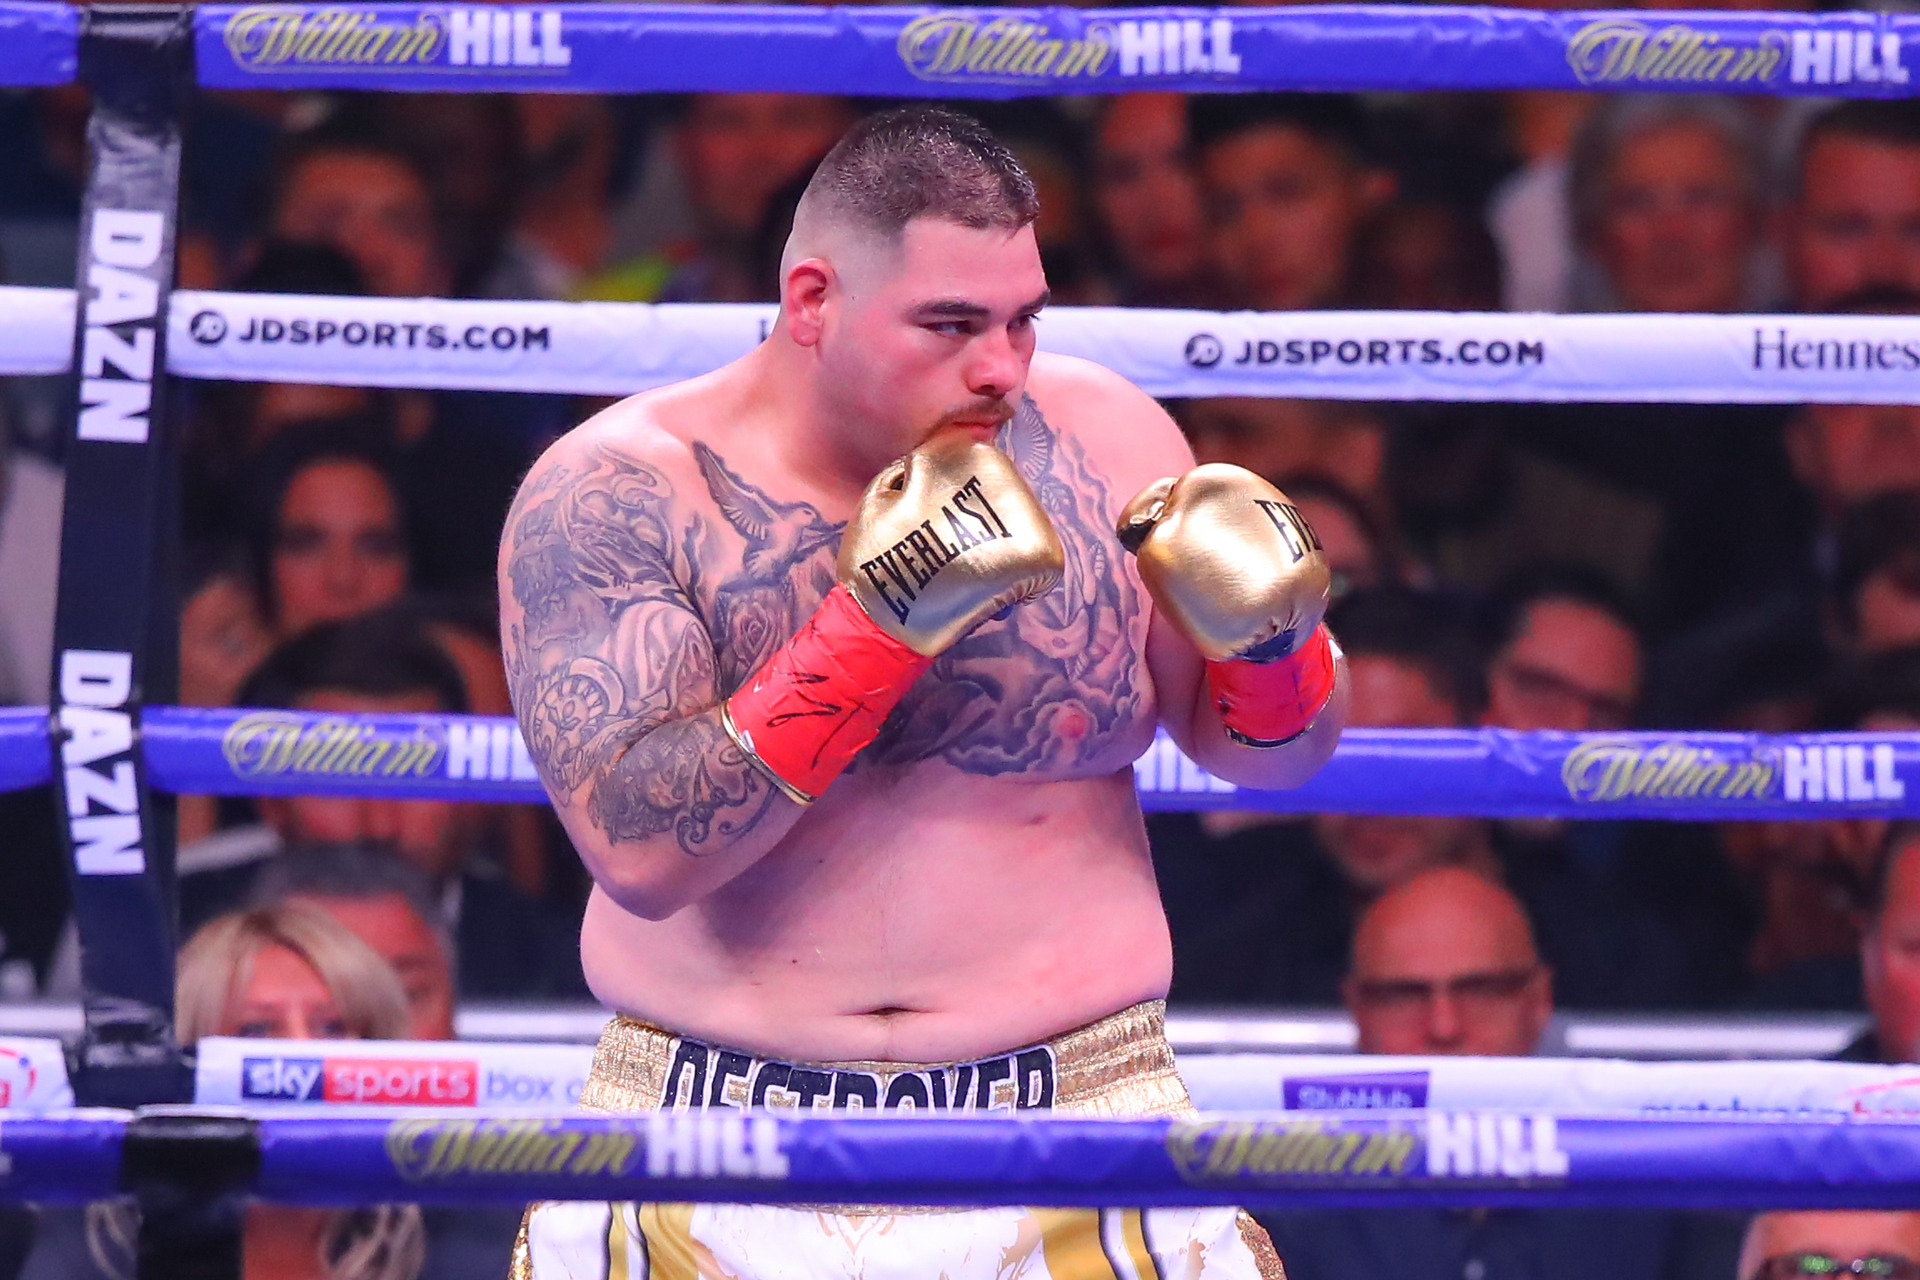 Not heavy anymore: Boxing champ's dramatic weight loss